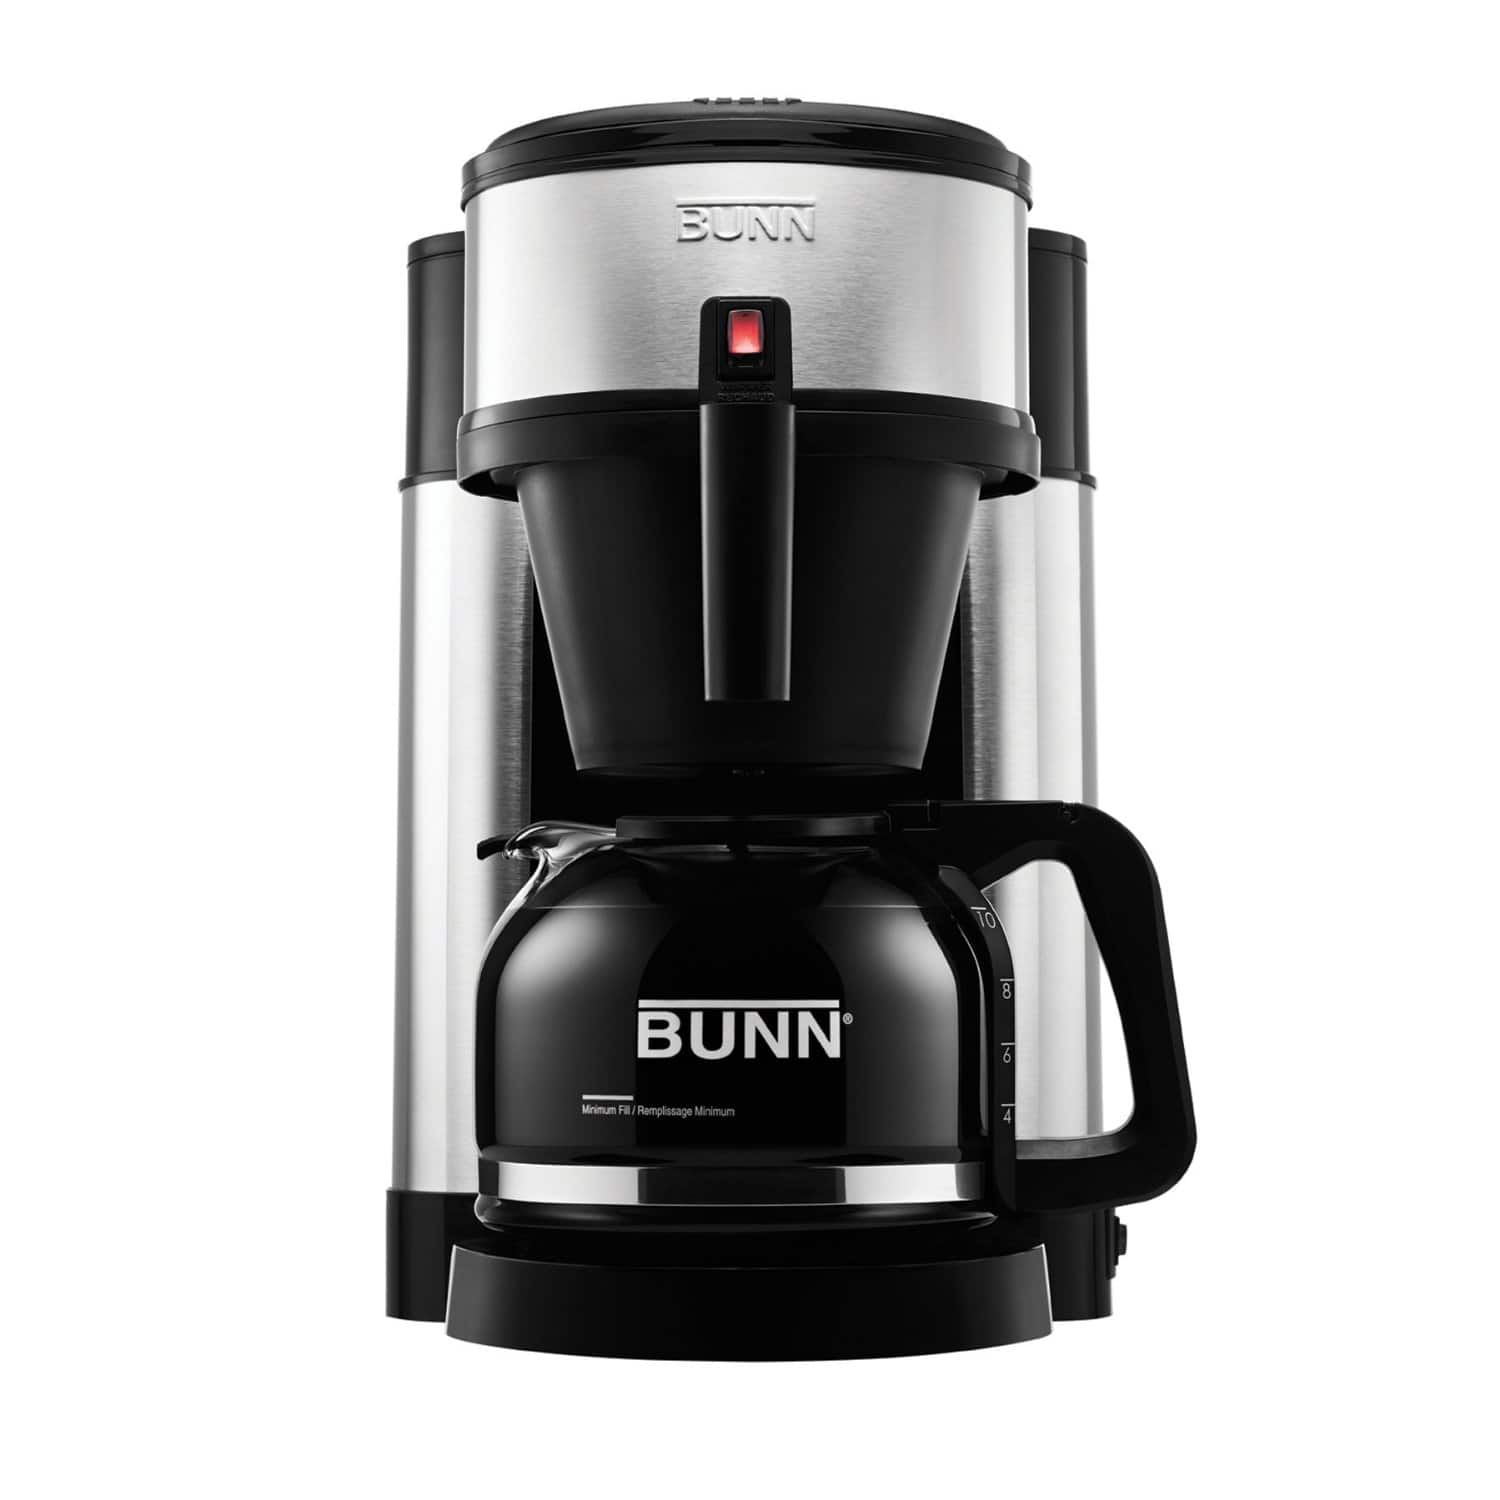 BUNN NHS Velocity Brew 10-Cup Coffee Brewer  $76.60 + Free Shipping